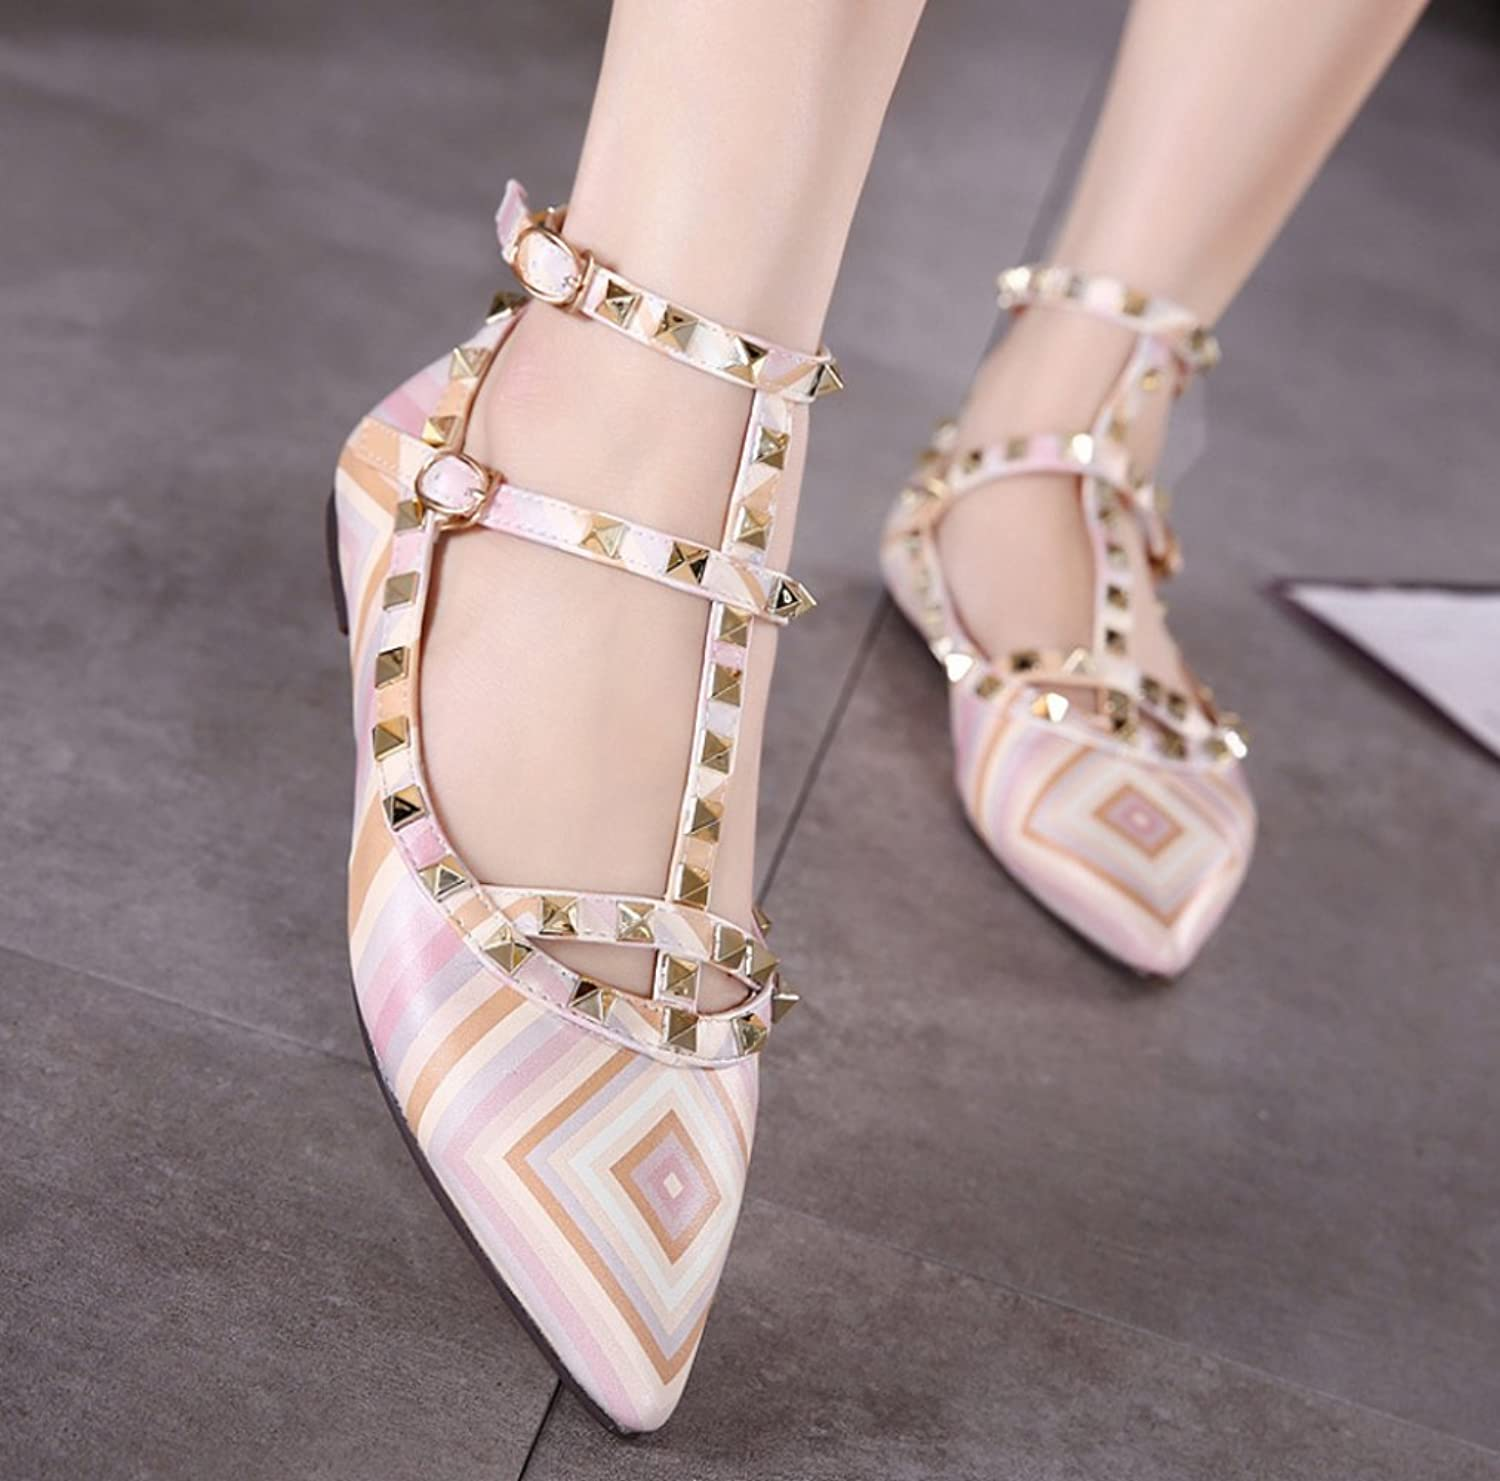 Women's Rivet Hollow Pointed Toe Flat Sandals shoes